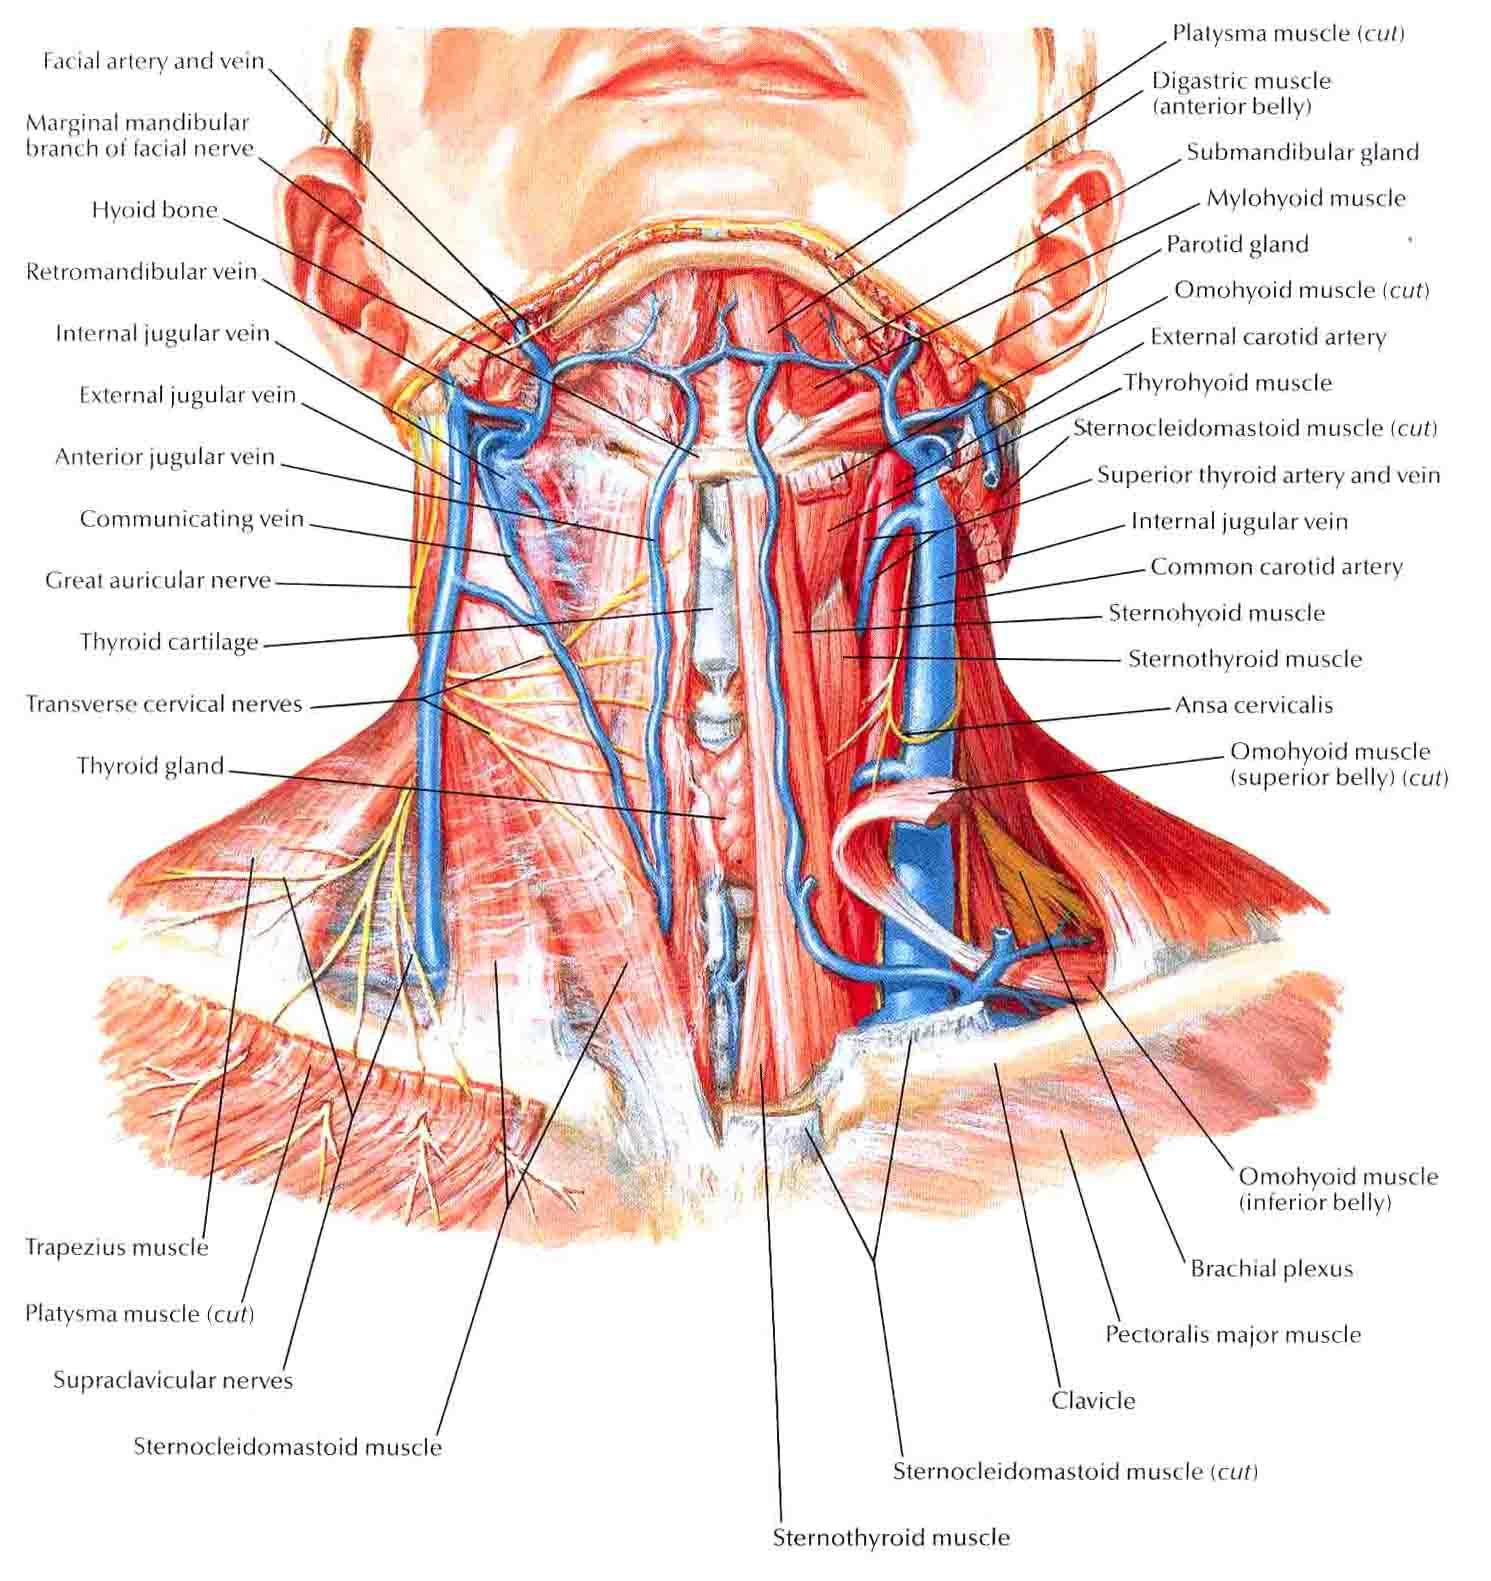 medical anatomy of a female neck - Google Search | anatomy ...